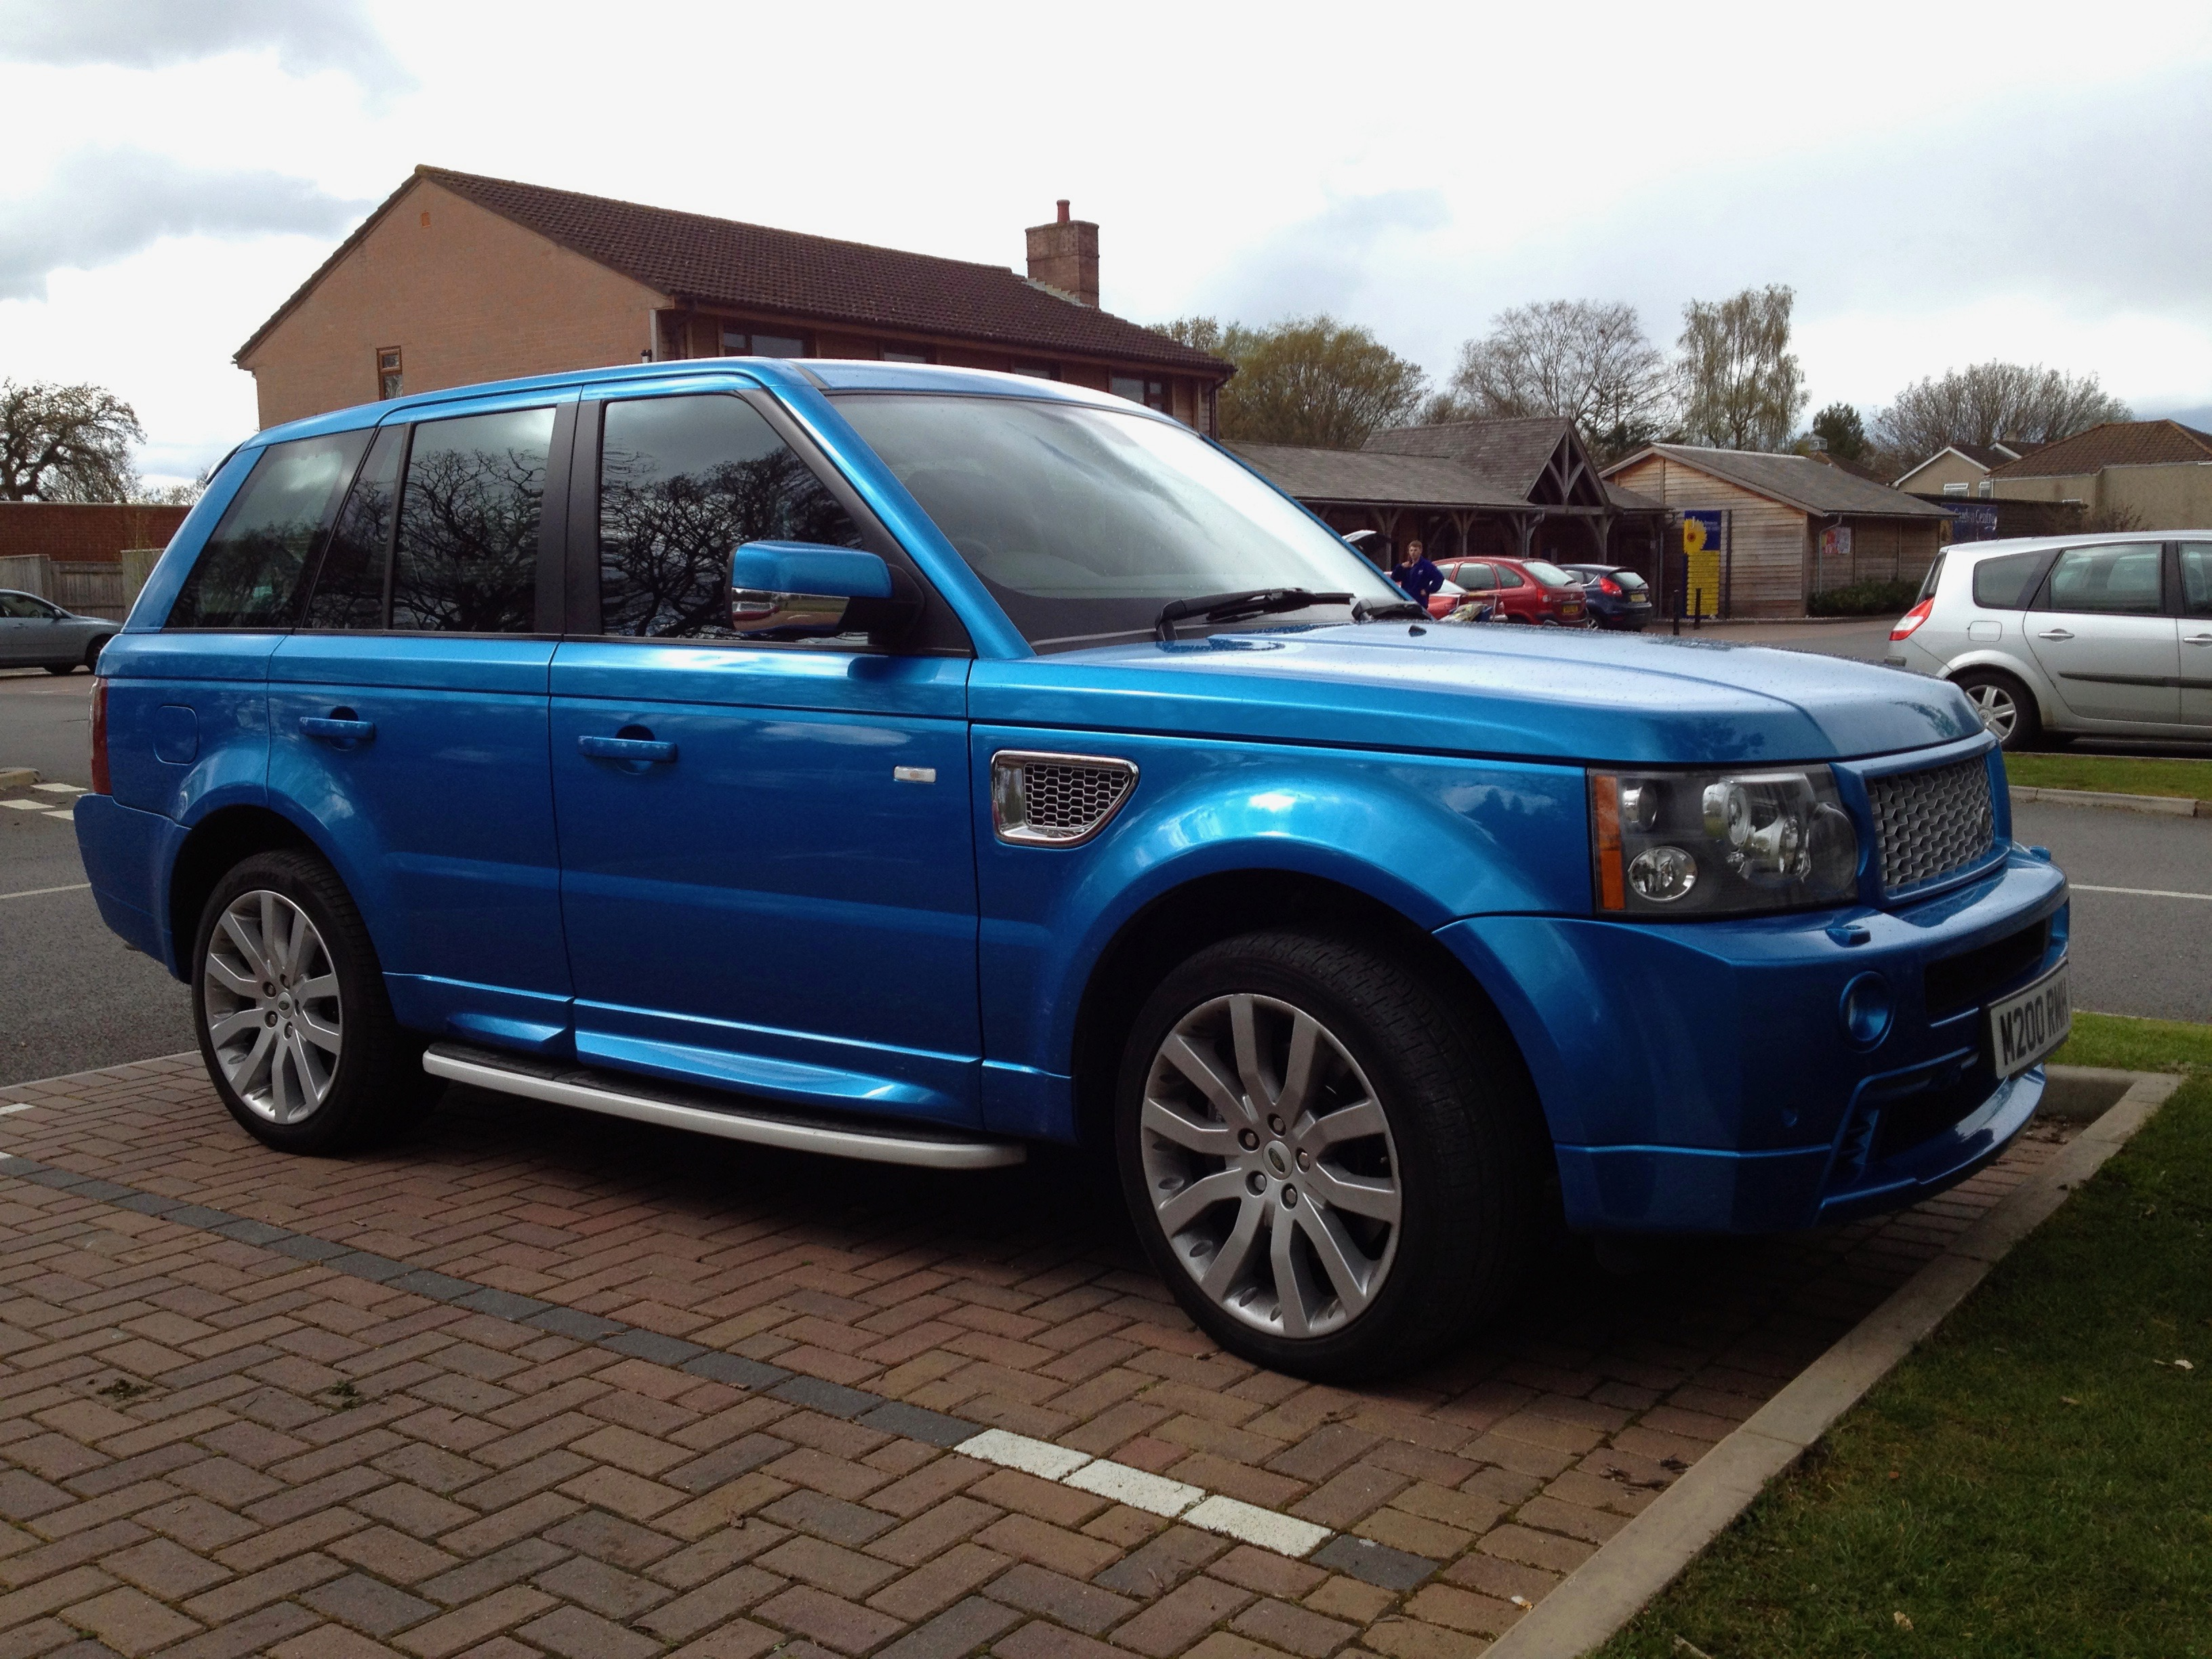 Image of a blue Range Rover with black out side windows